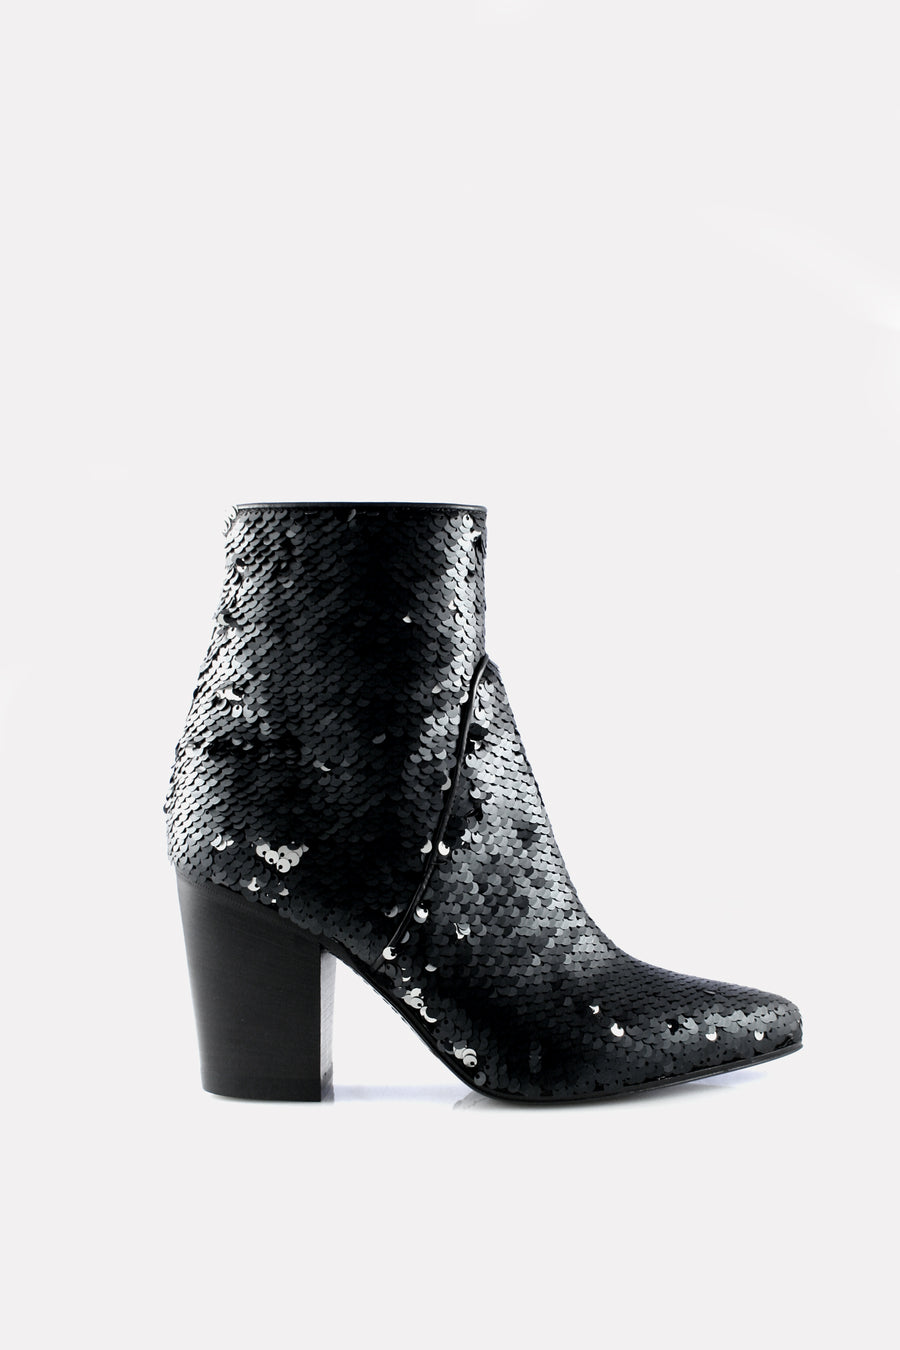 Point Toe Boot Black and Silver Sequins.